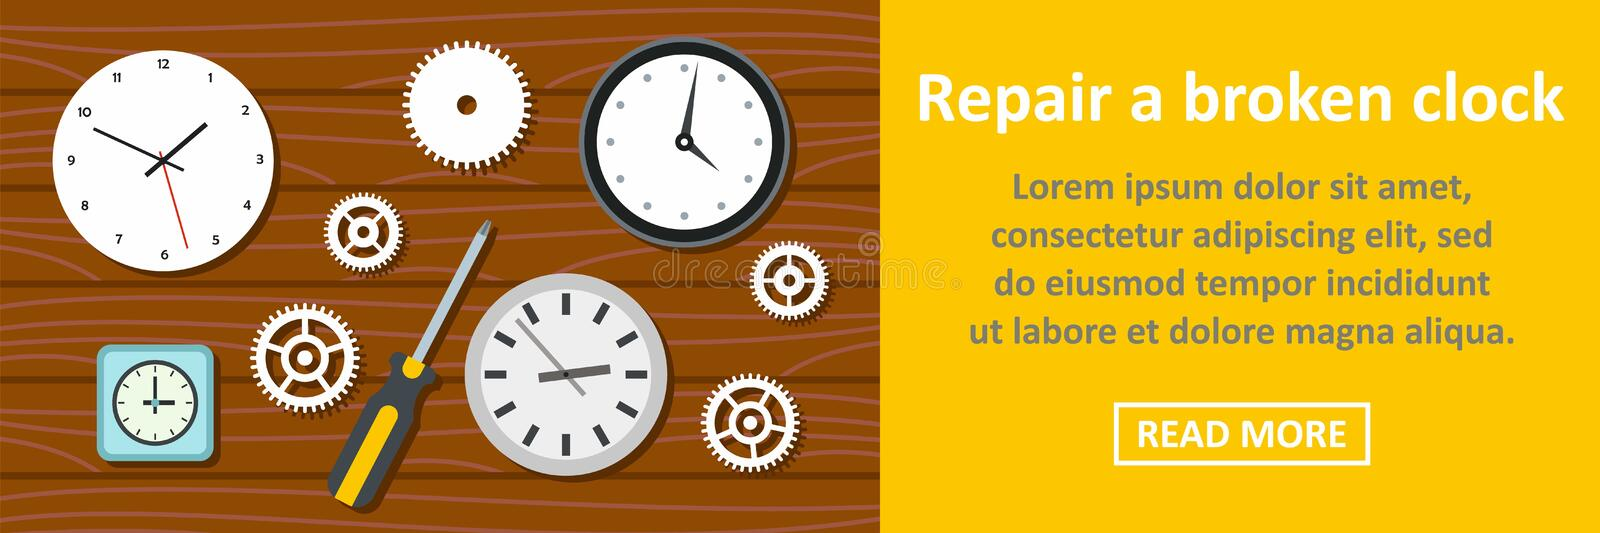 Repair a broken clock banner horizontal concept stock illustration